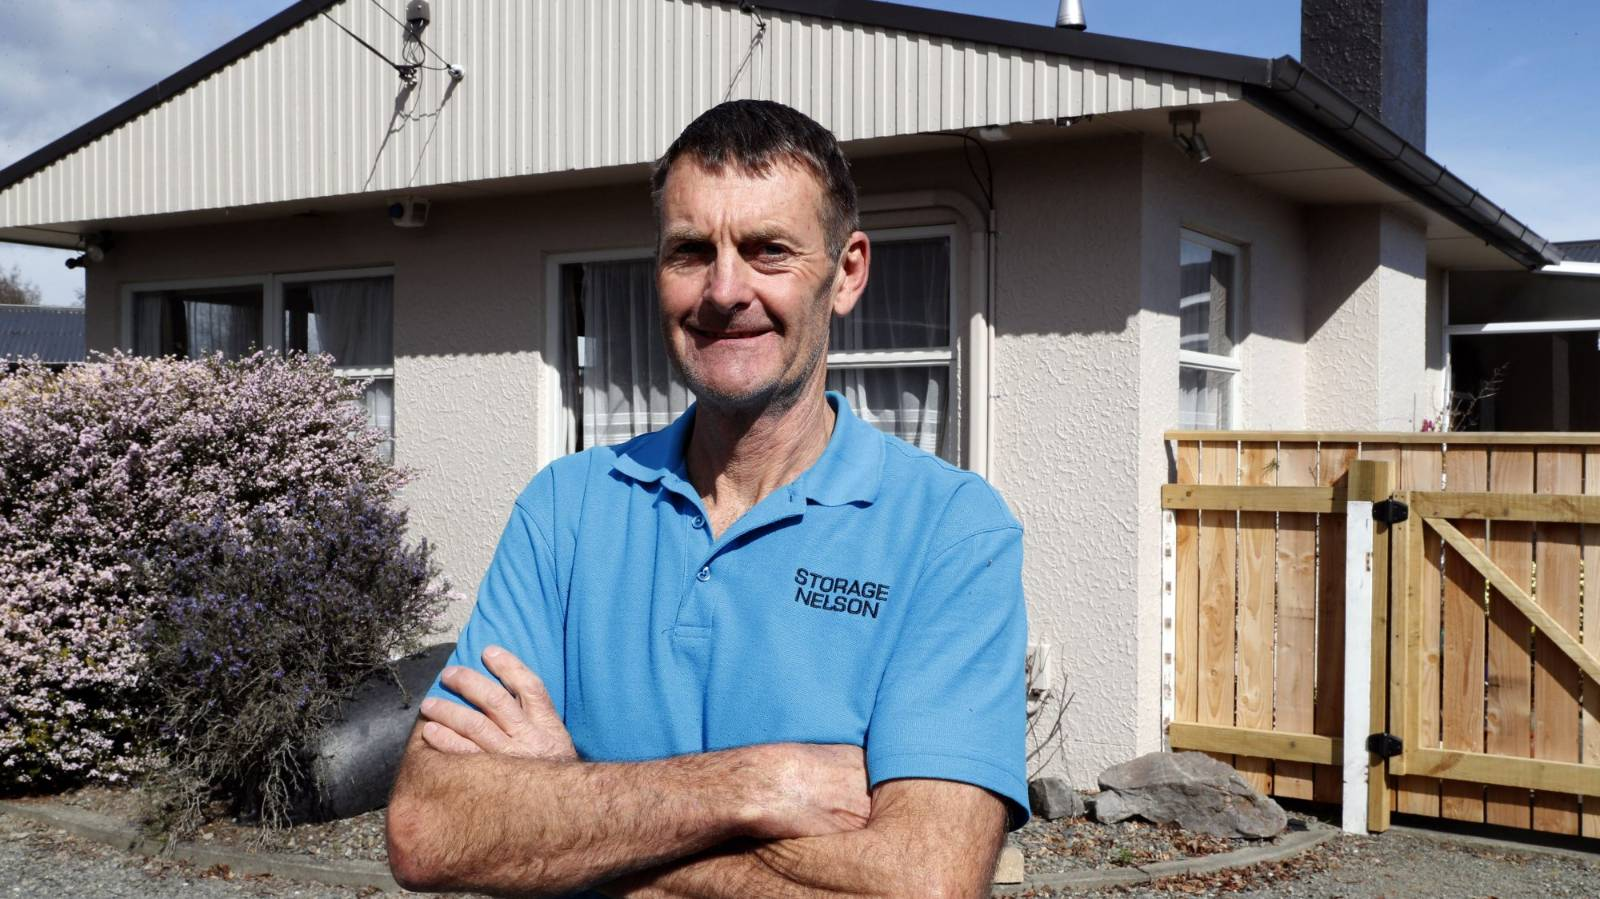 Property investing no 'free ride'